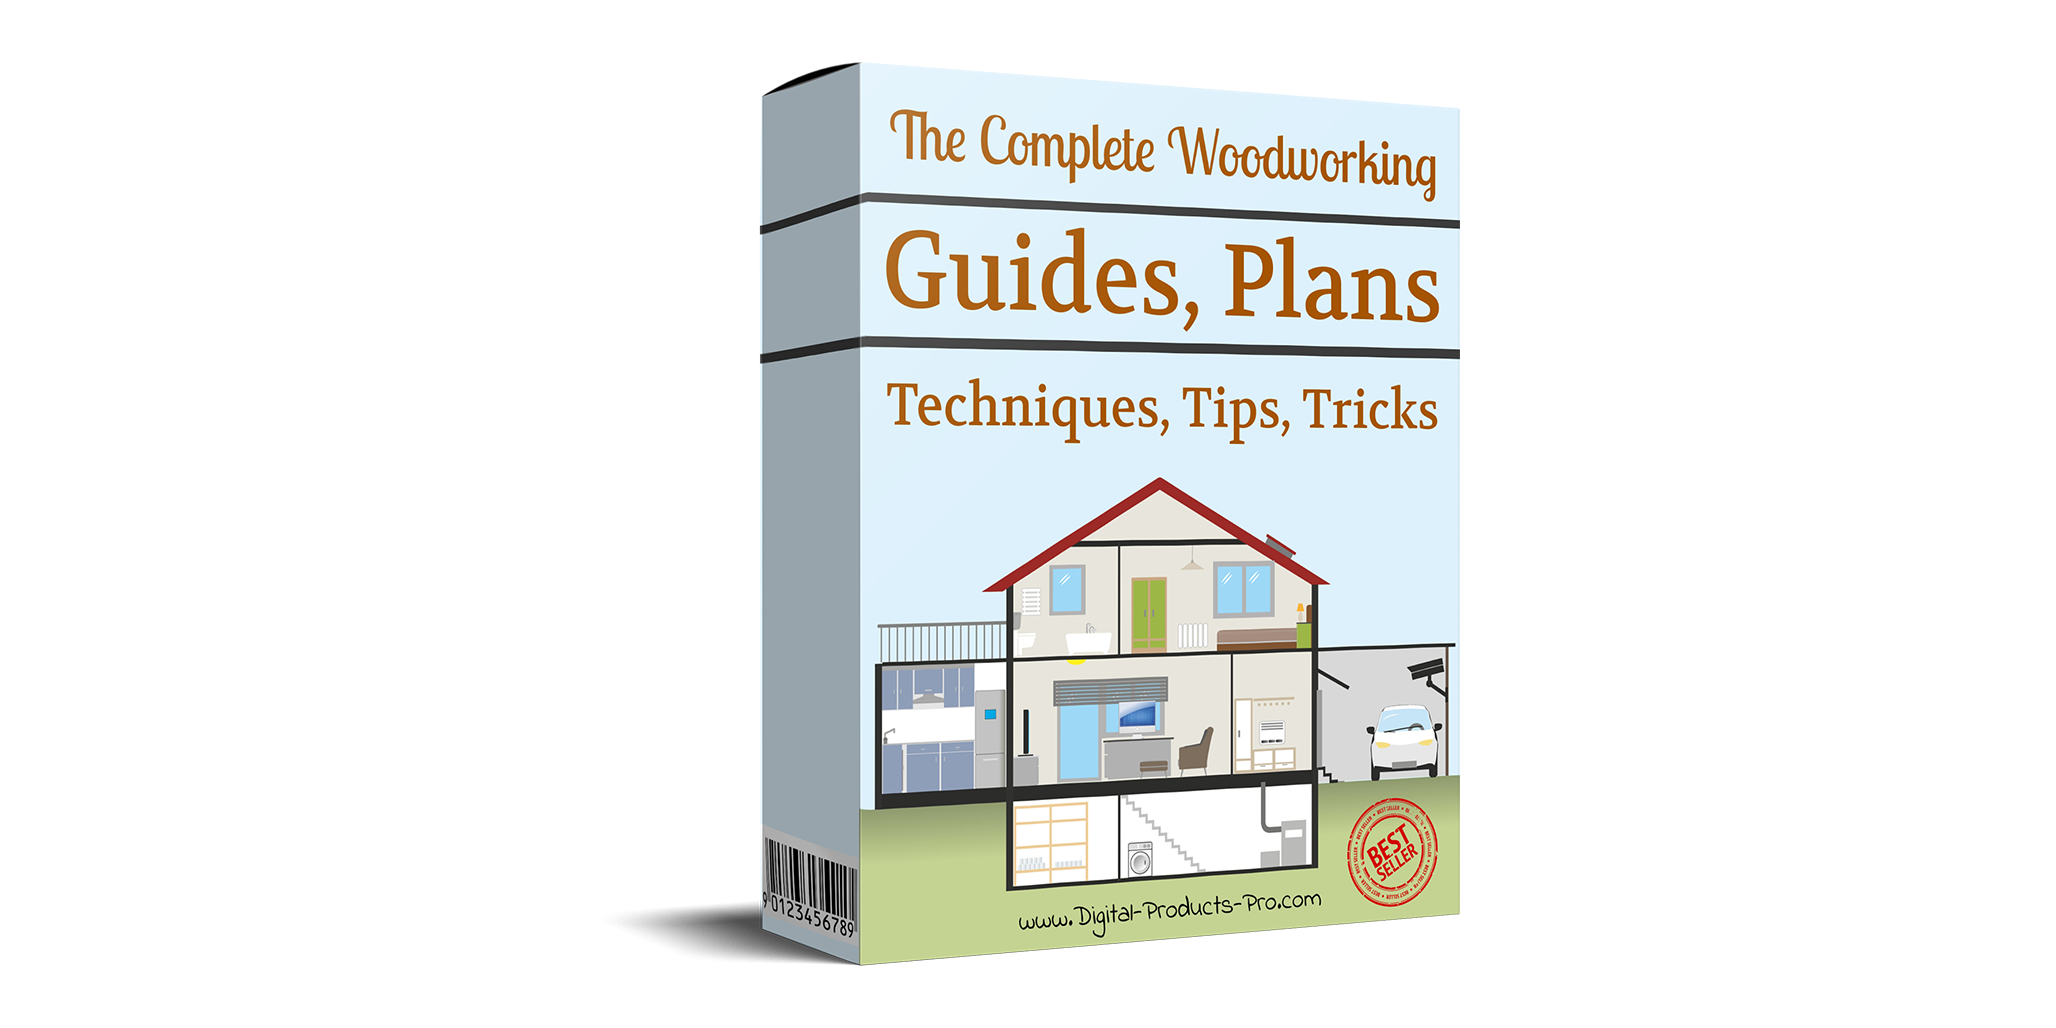 18000+ The Complete Woodworking,  Thousands Of eBooks,  Magazines,  Guides,  Plans,  Techniques,  Tips